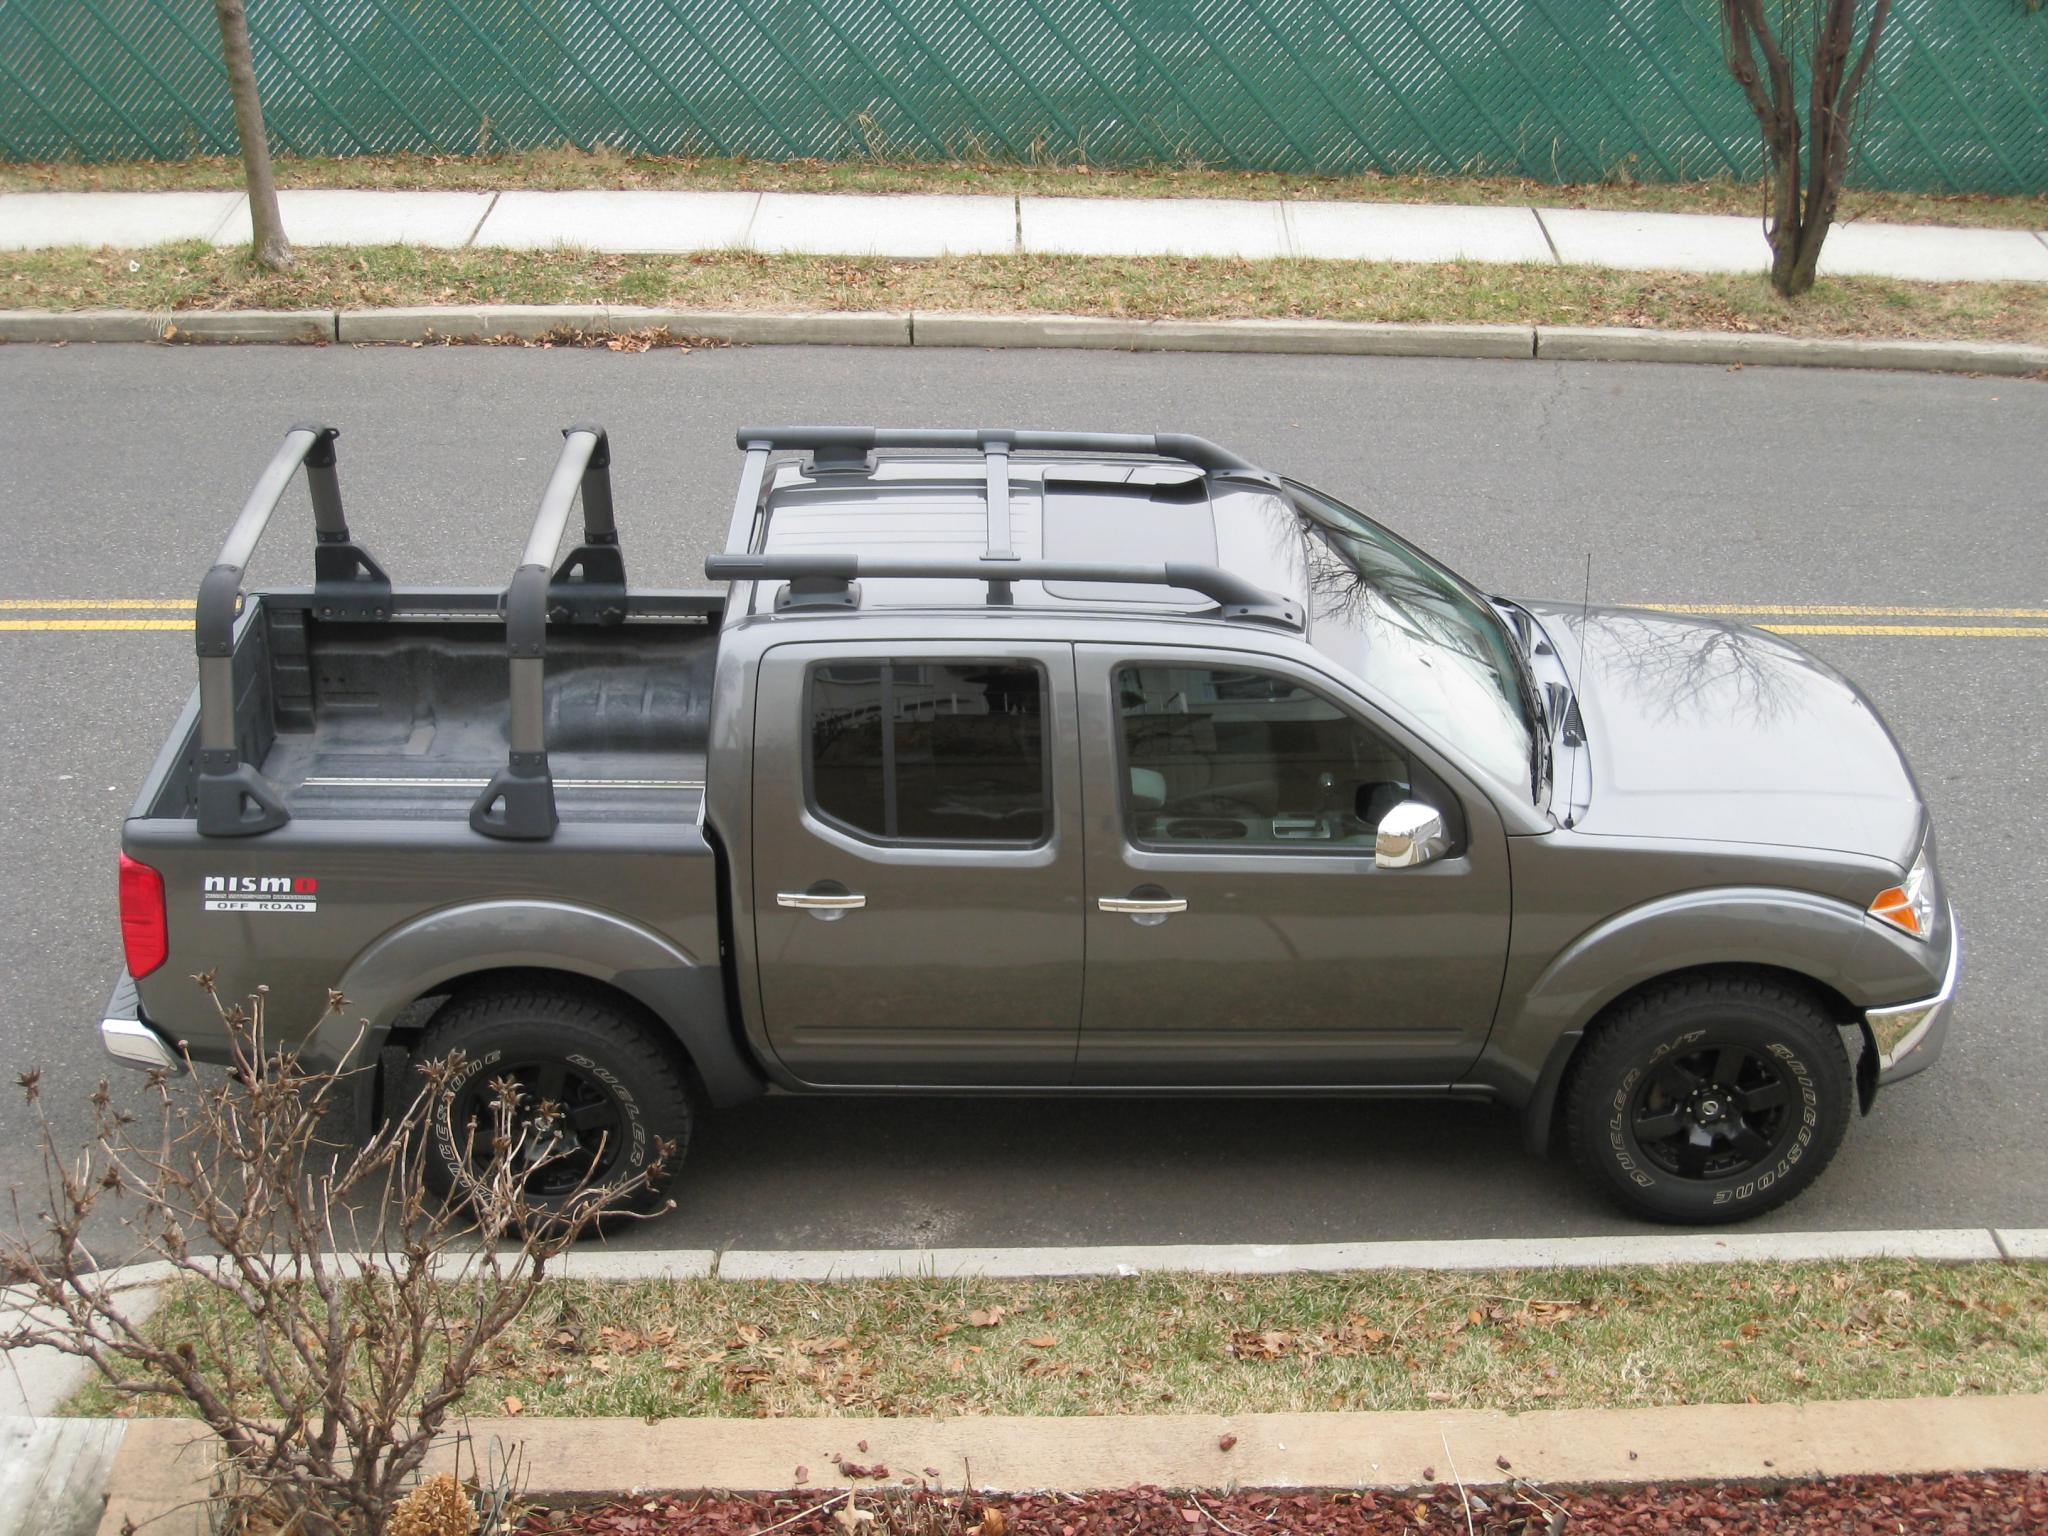 Attractive Very Good Looking Nissan Frontier With Bed Rack And Roof Rack. | New Truck  Ideas | Pinterest | Roof Rack, Nissan And Nissan Navara